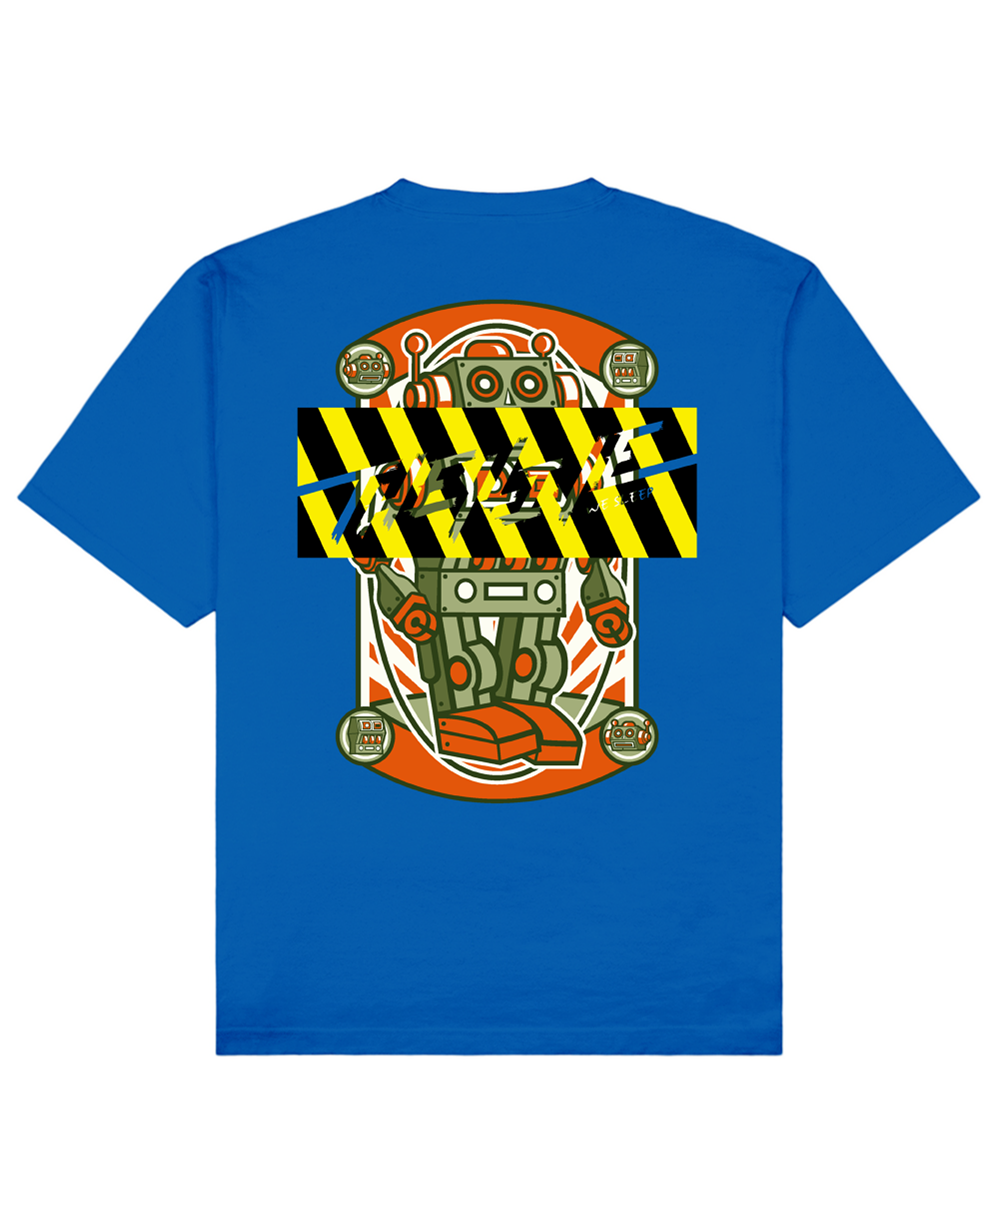 Tin Toy Robot Print T-Shirt in Blue - T-Shirts - THEYLIVE - BRANMA